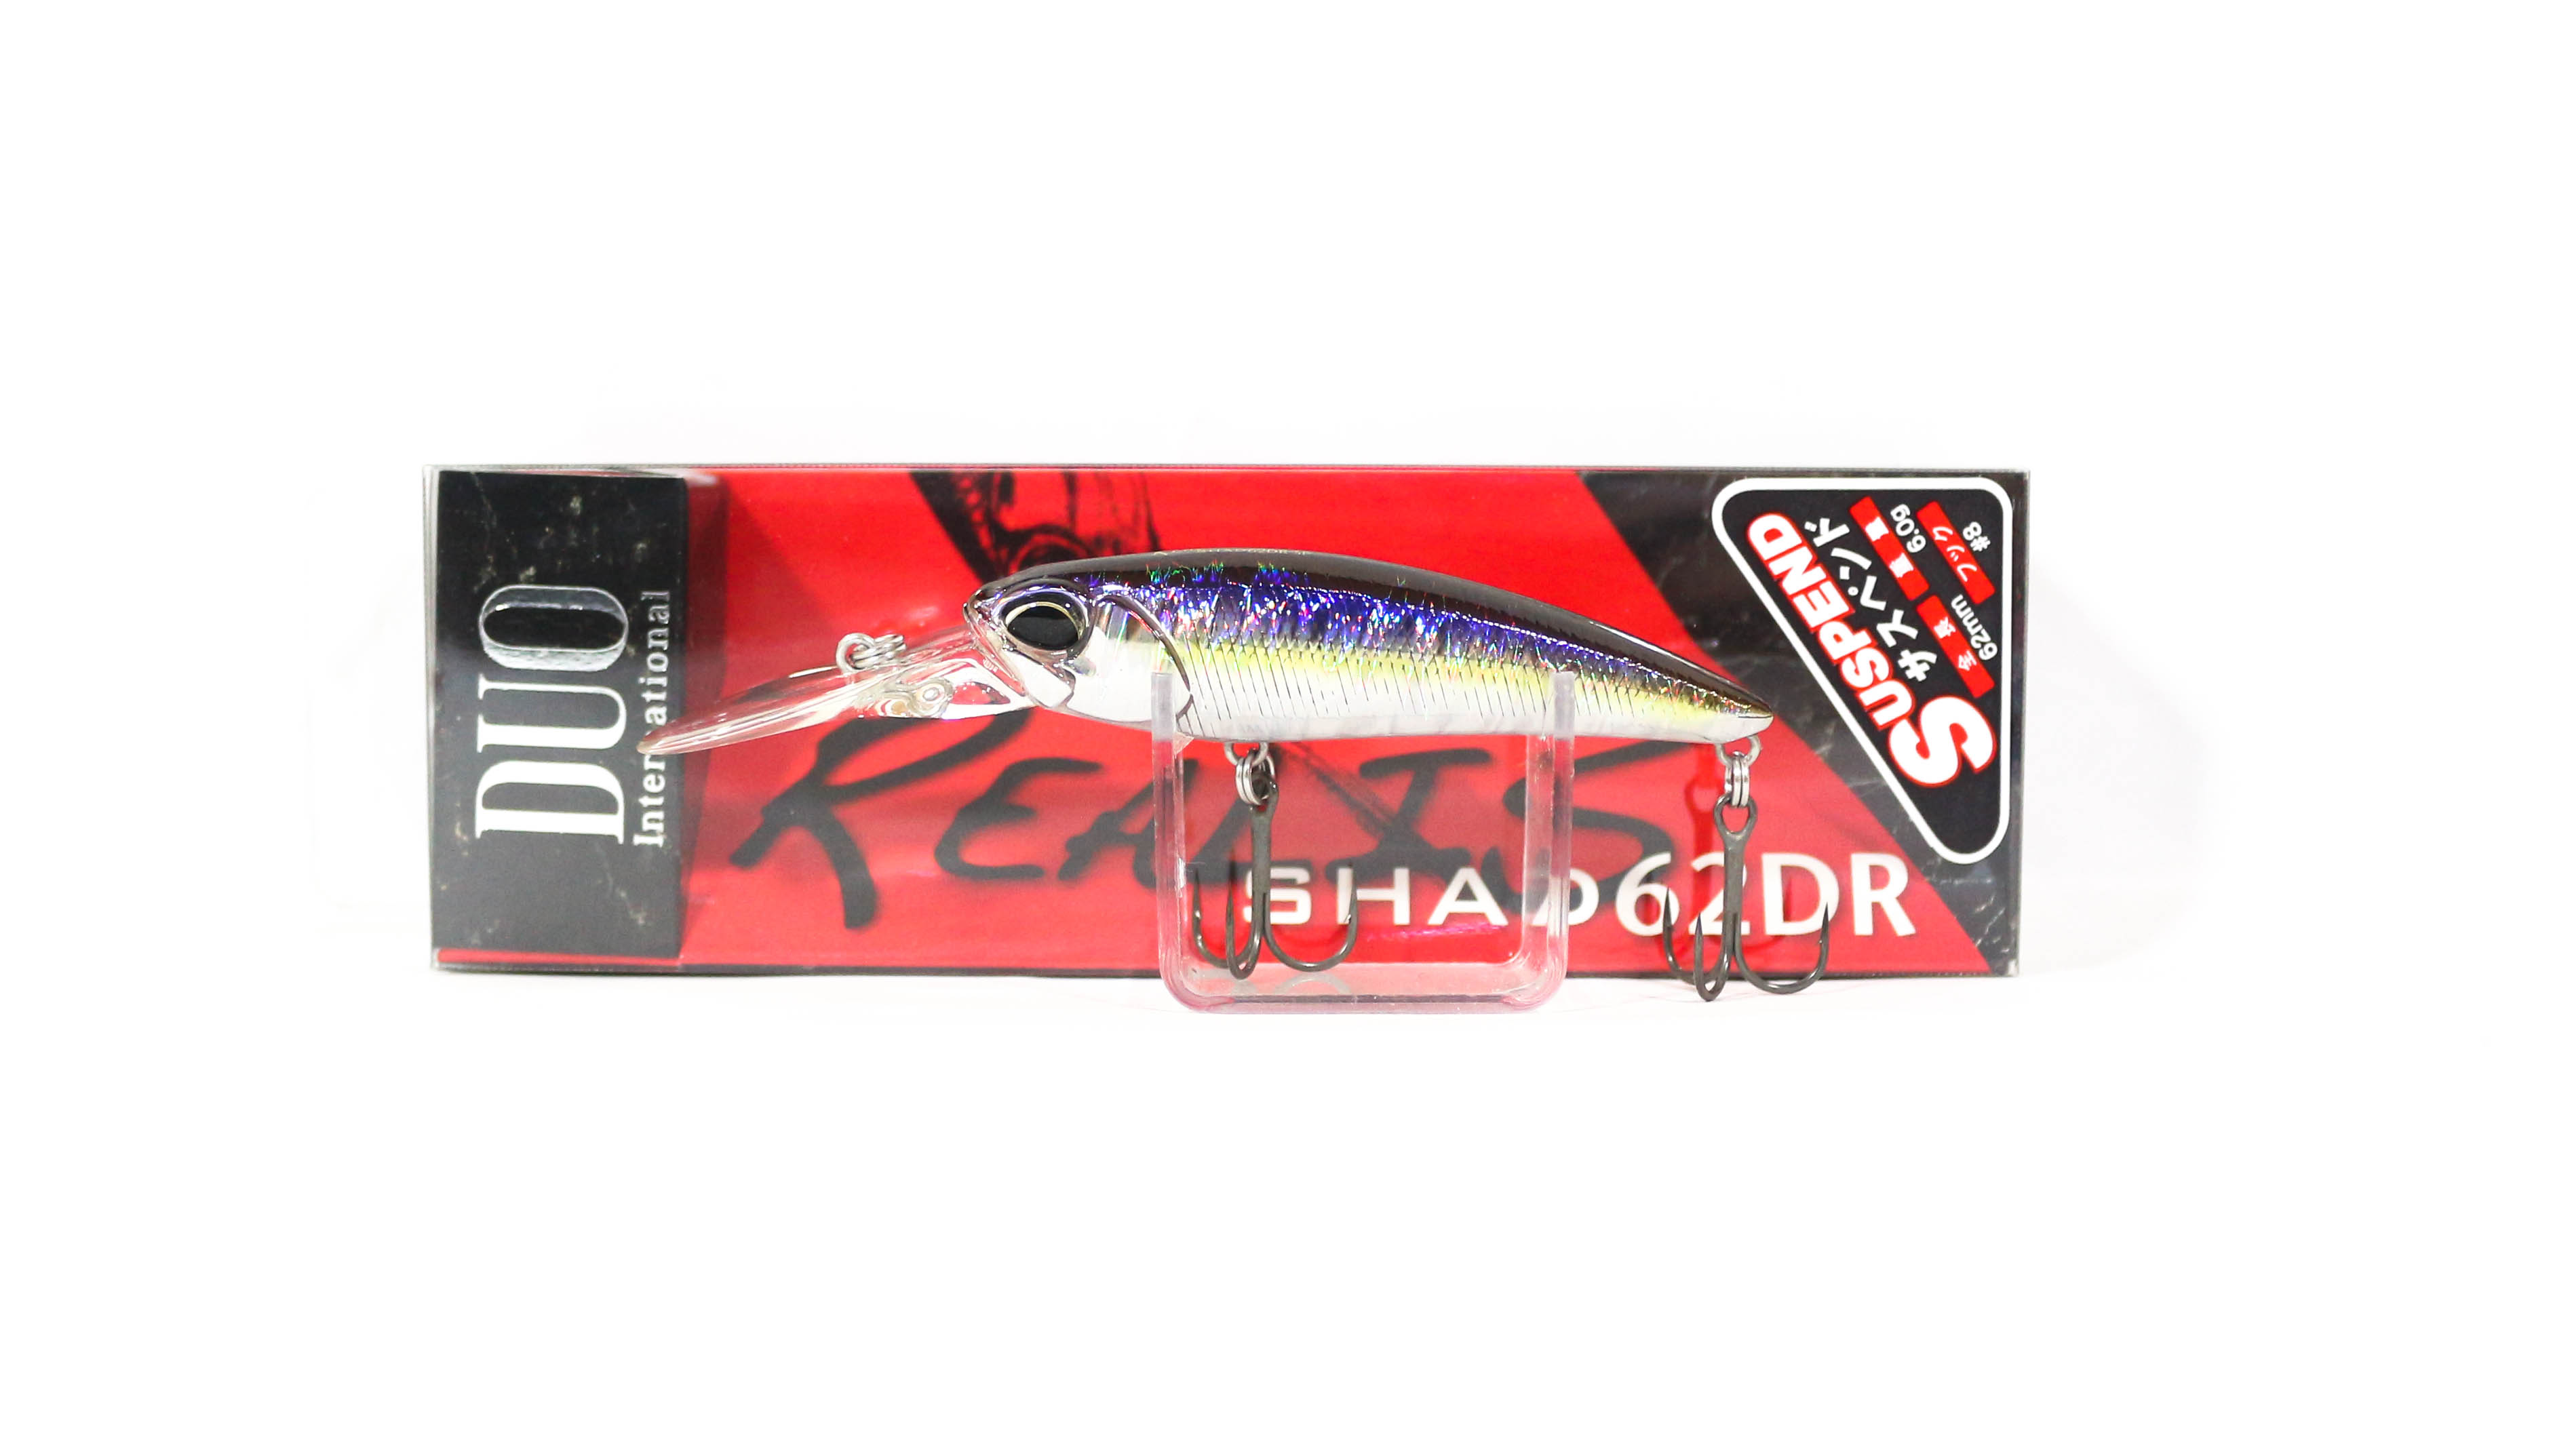 Duo Realis Shad 62 DR Suspend Lure DPA4009 (6773)